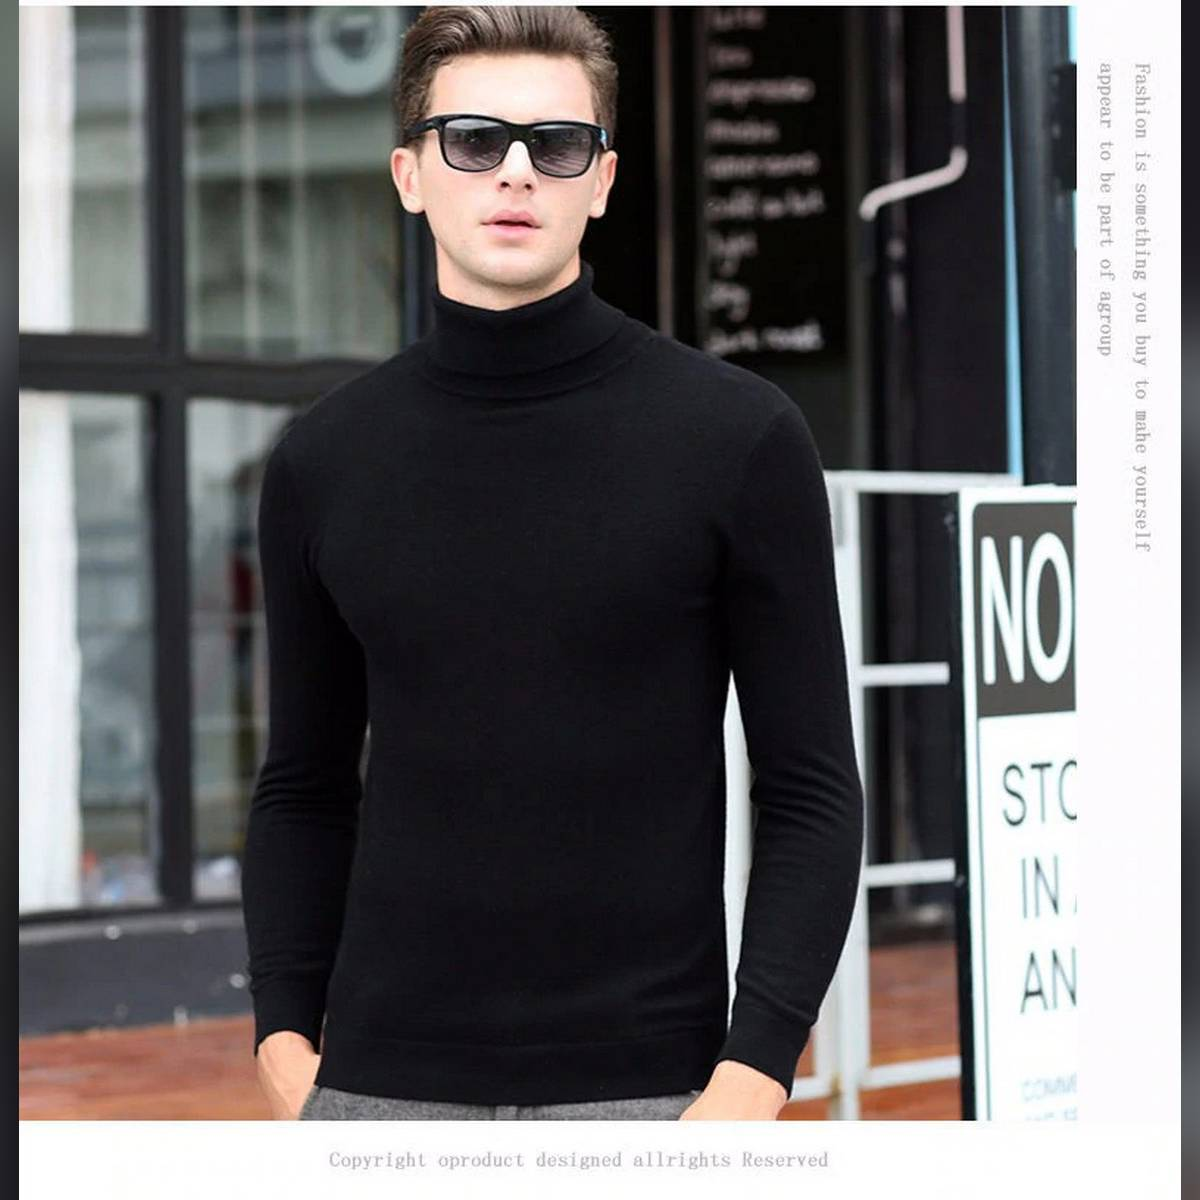 High Quality Men Boyss Winter High Neck 100% Soft Cotton Turtle Neck Hi neck Sweaters Stretch Shirt Tops Highneck Hineck Stretchable Skin Fit Top Gift Present